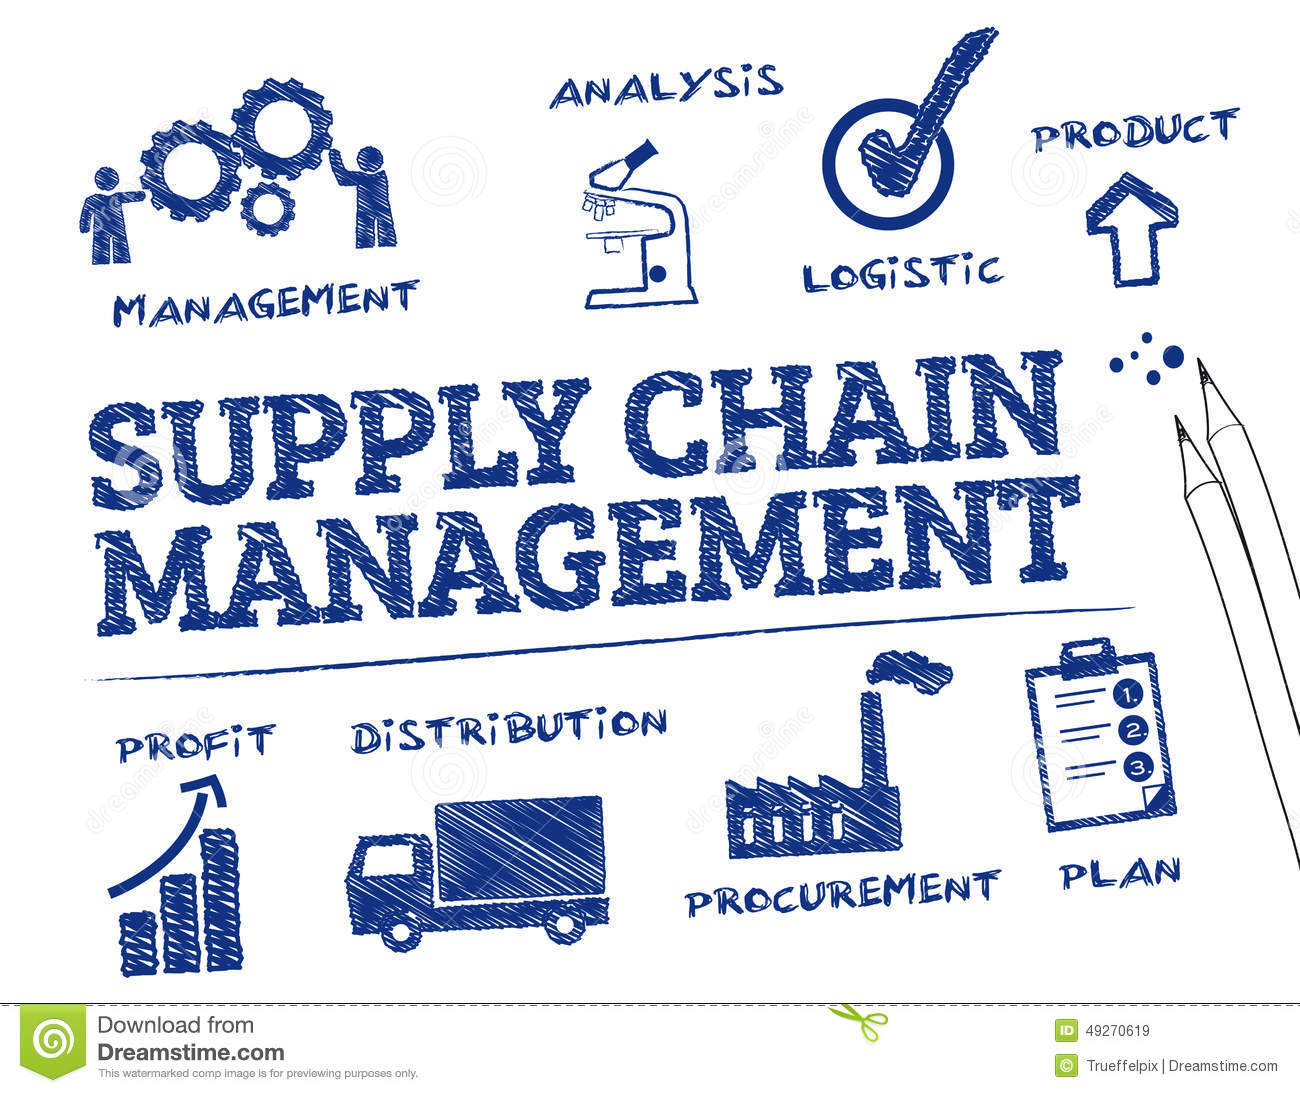 an analysis of the importance of technology in supply chain management systems However, the reality is that with the comprehensive design of supply chain management software, vendors have created technology that helps with warehouse management, including supply chain performance tools and tools for evaluating the condition of inventory materials.